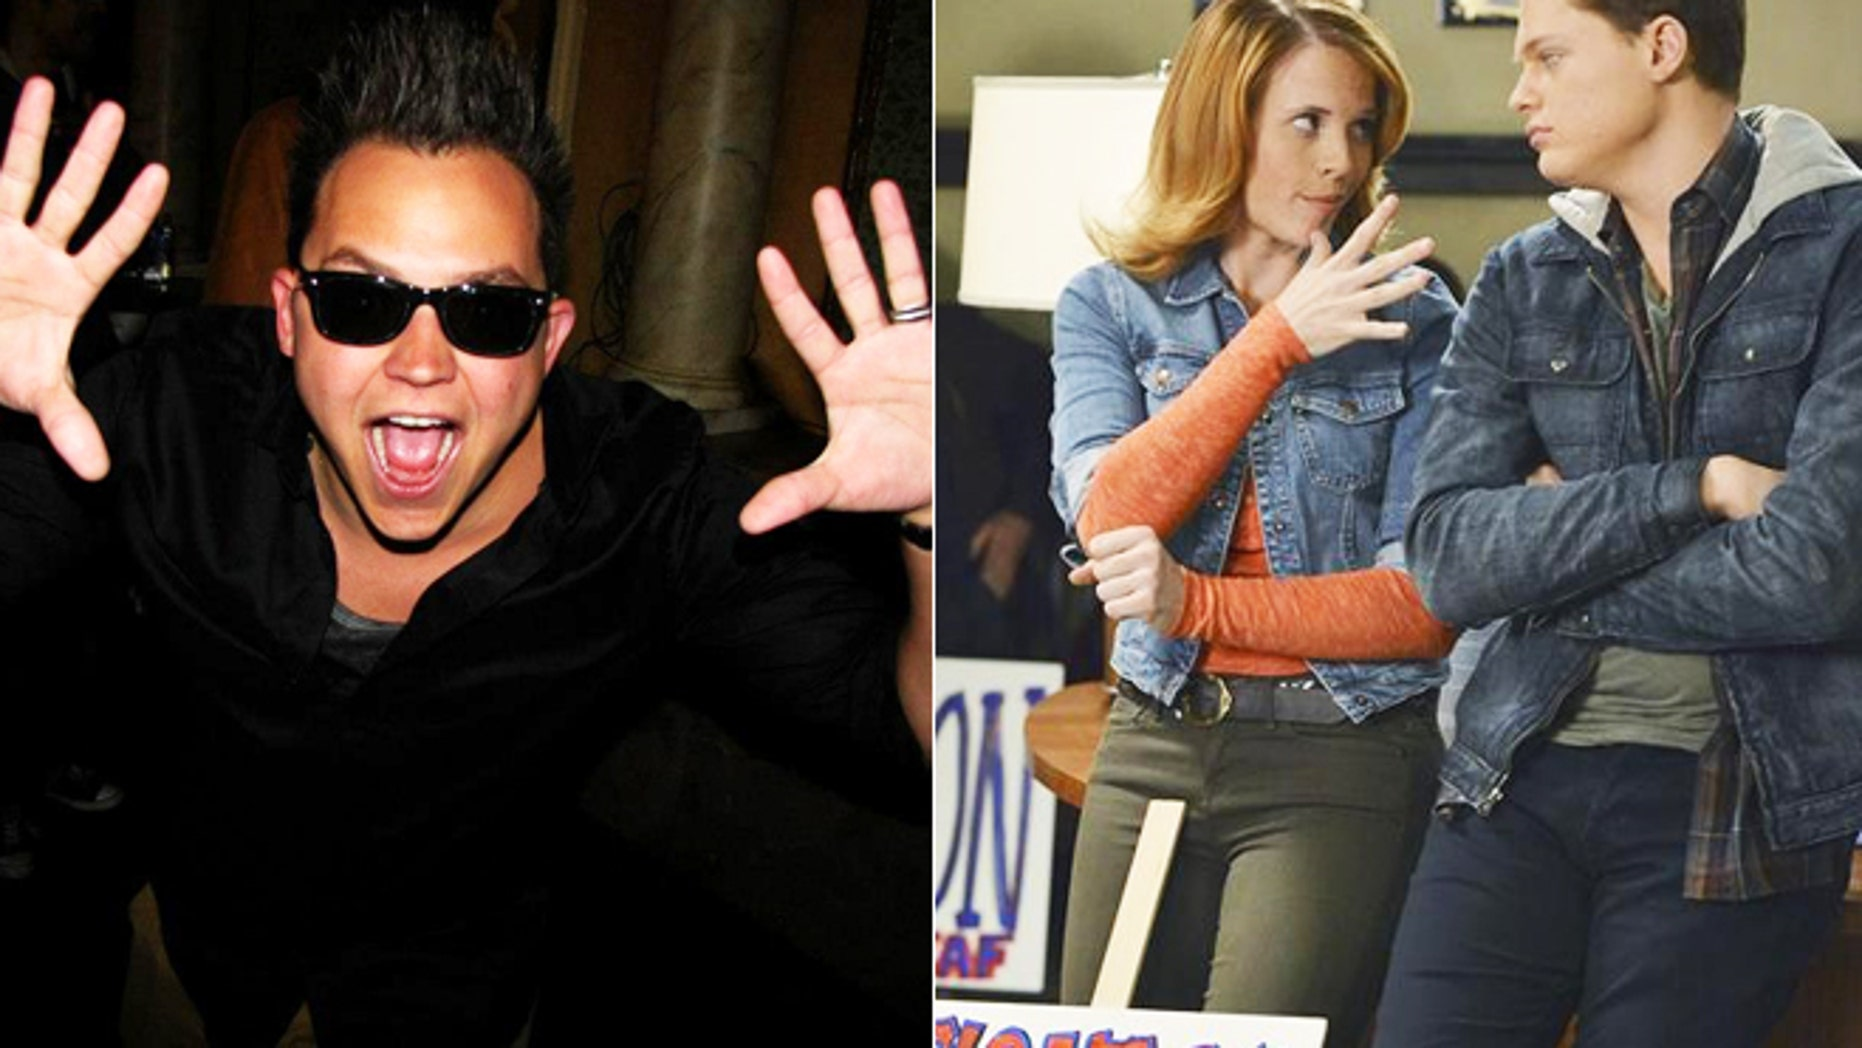 Deaf musician Sean Forbes (left), and Deaf actor Sean Beardy (right, with actress Katie Leclerc on 'Switched at Birth'), are some of the deaf and hard-of-hearing entertainers succeeding in mainstream music and TV.